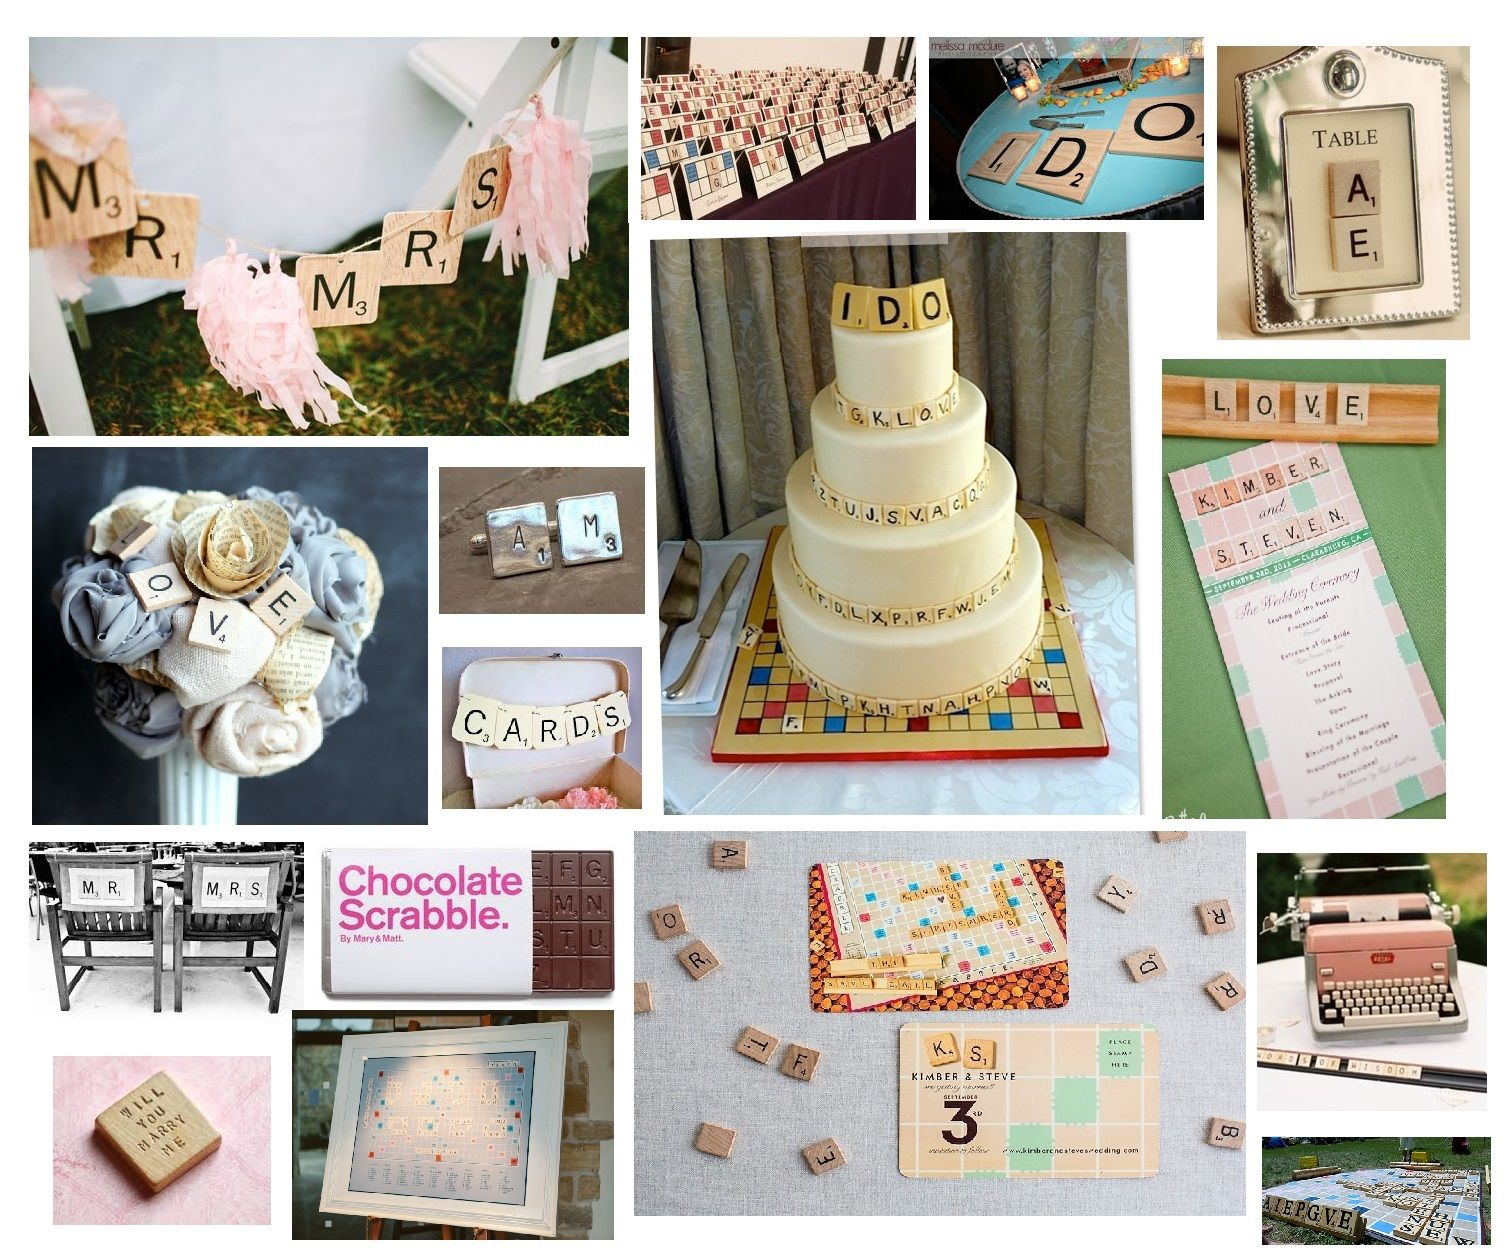 Video Game Wedding Ideas: Scrabble Wedding Theme Inspiration Board